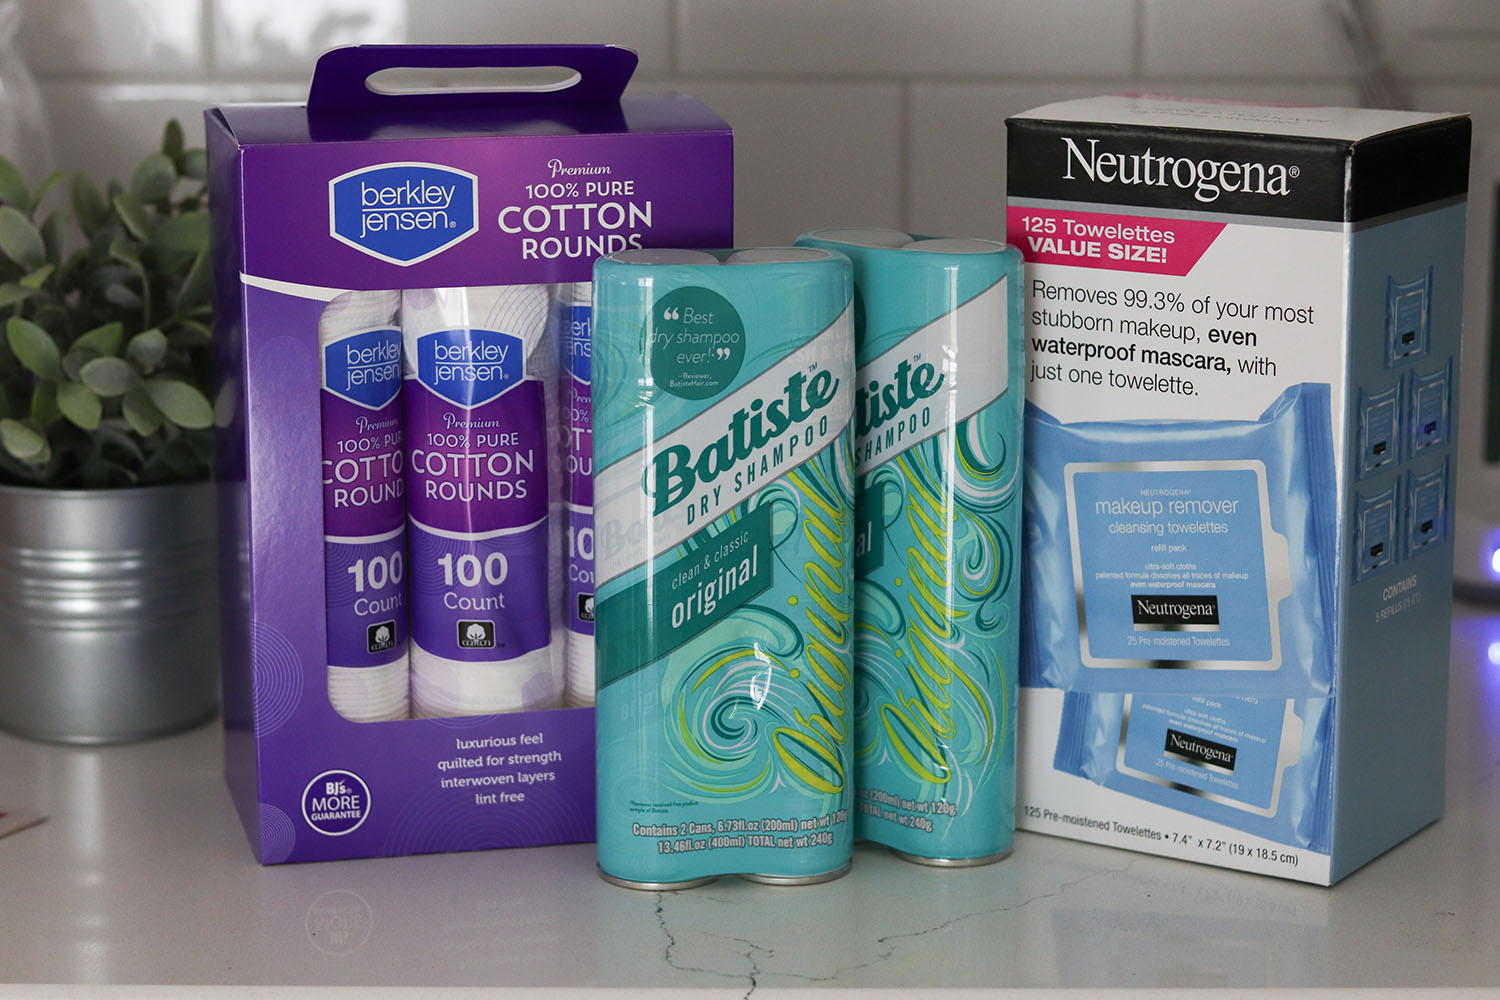 Health and Beauty Essentials at BJ's Wholesale Club   Brighter Darling Favorites